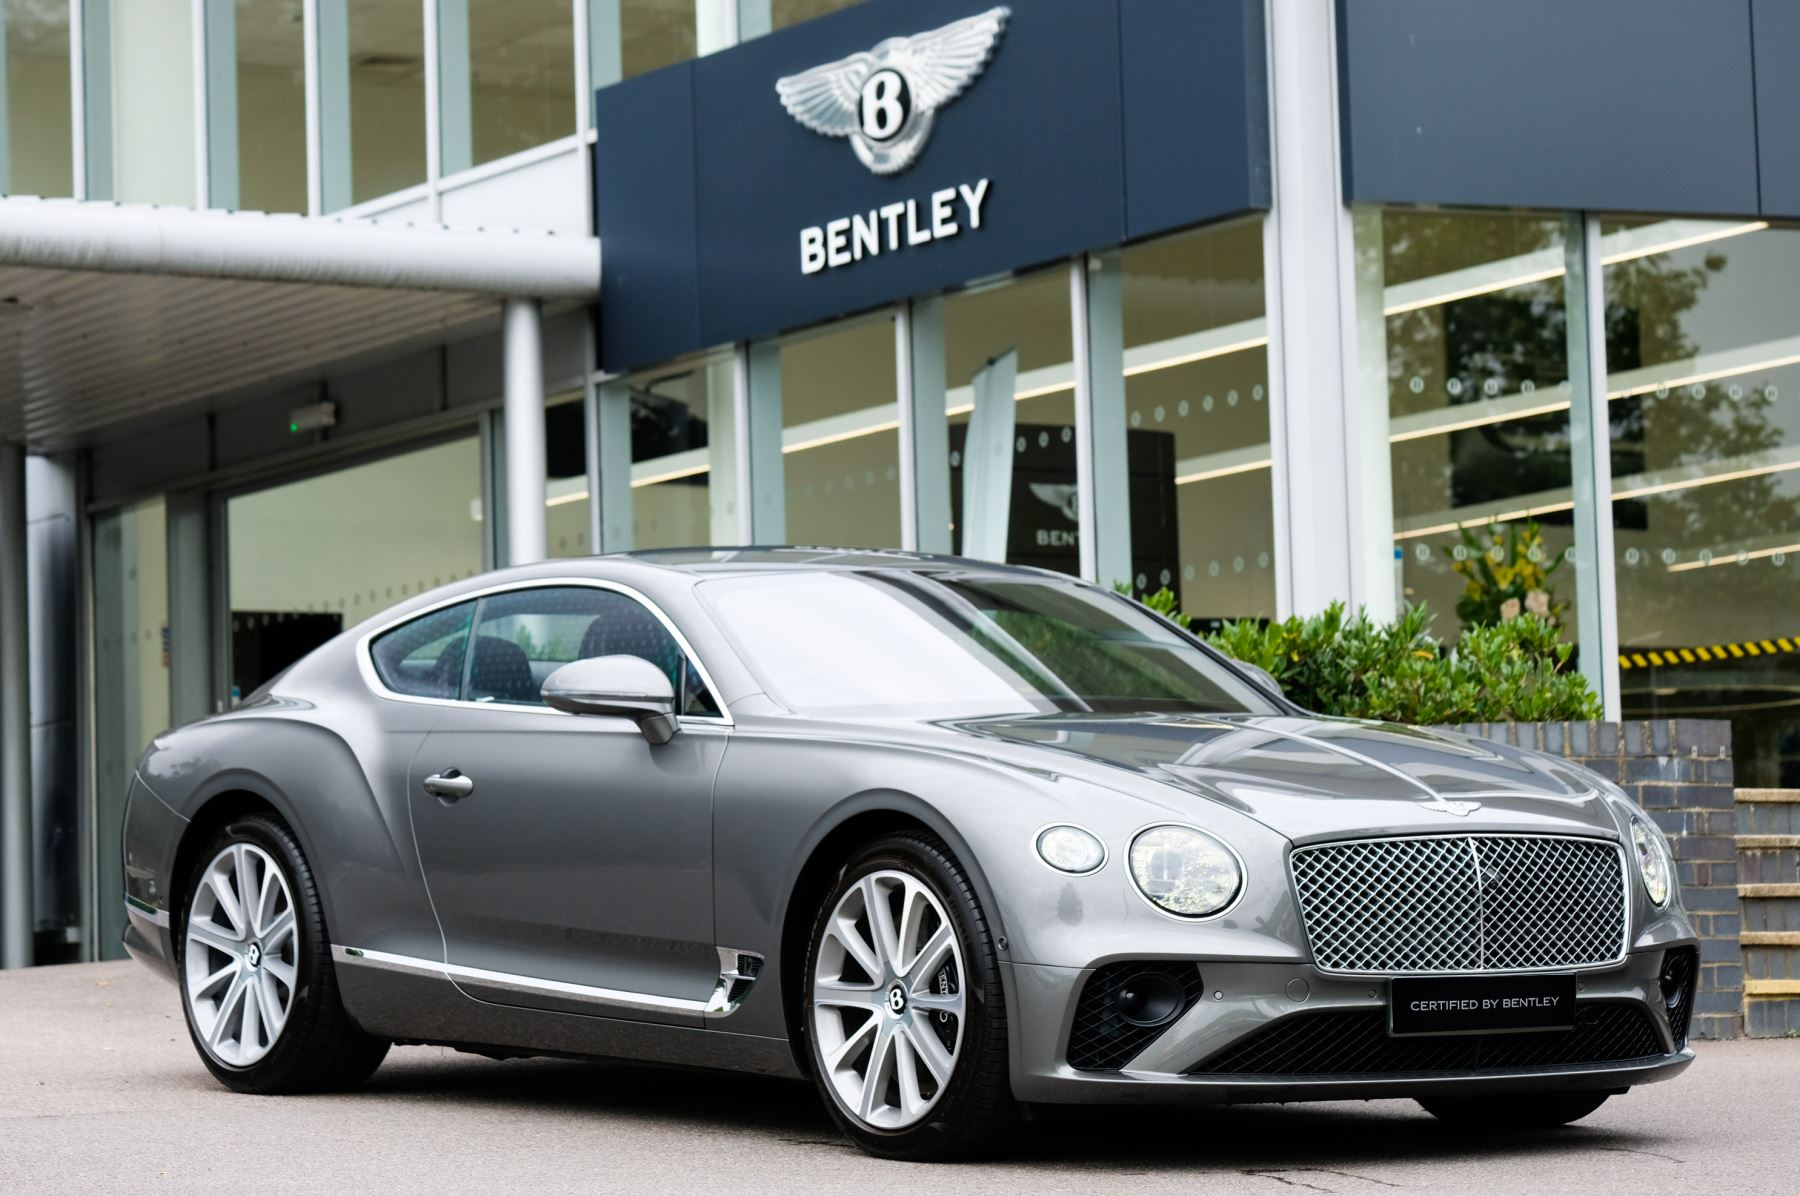 Bentley Continental GT 6.0 W12 - Touring, Front Seat and Dealer Launch Specification Automatic 2 door Coupe